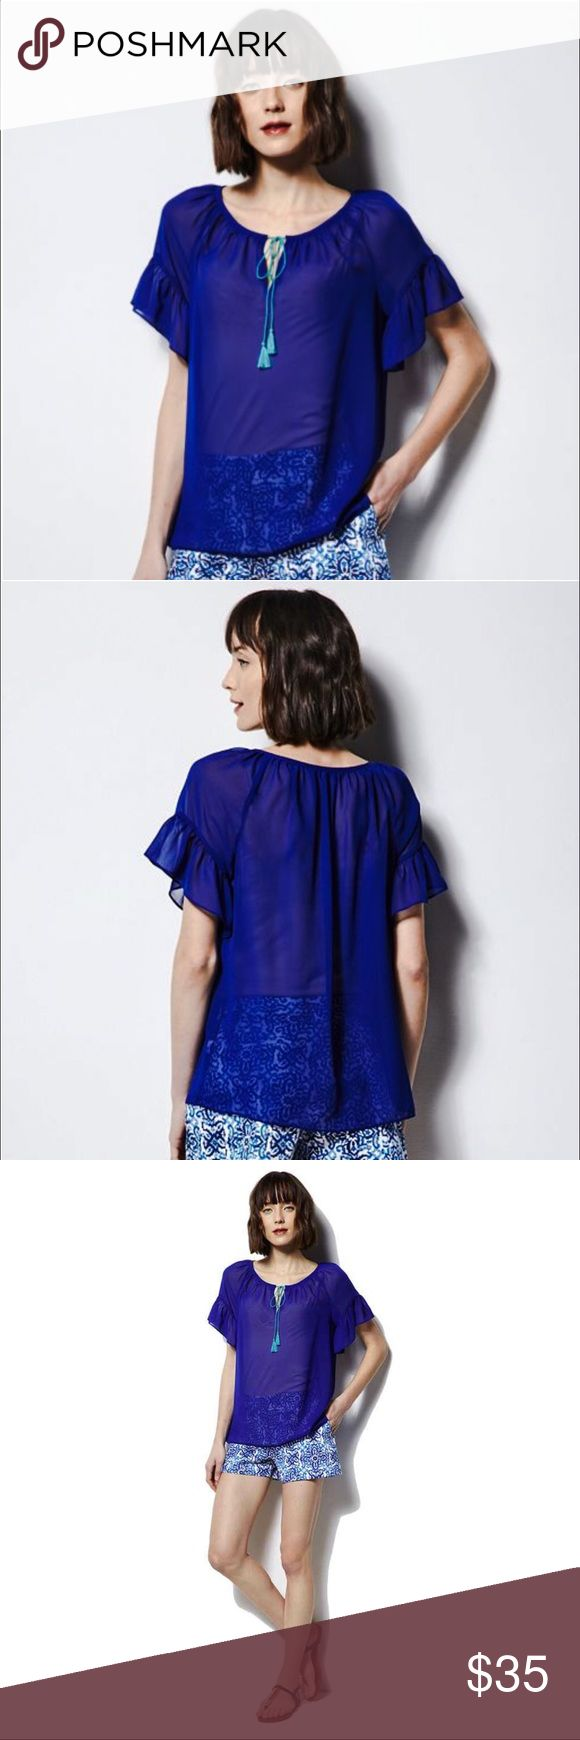 MILLY FOR DESIGNATION BLUE SHEER PEASANT BLOUSE Vibrant colors and impeccable details give this women's MILLY for DesigNation royal blue sheer peasant top Mediterranean style.   Chest (M) (L) Shirred tie-front neckline with tassel accents in aqua Splitneck flowing style Ruffled short sleeves Sheer chiffon construction FABRIC & CARE Polyester Machine wash Milly Tops Blouses